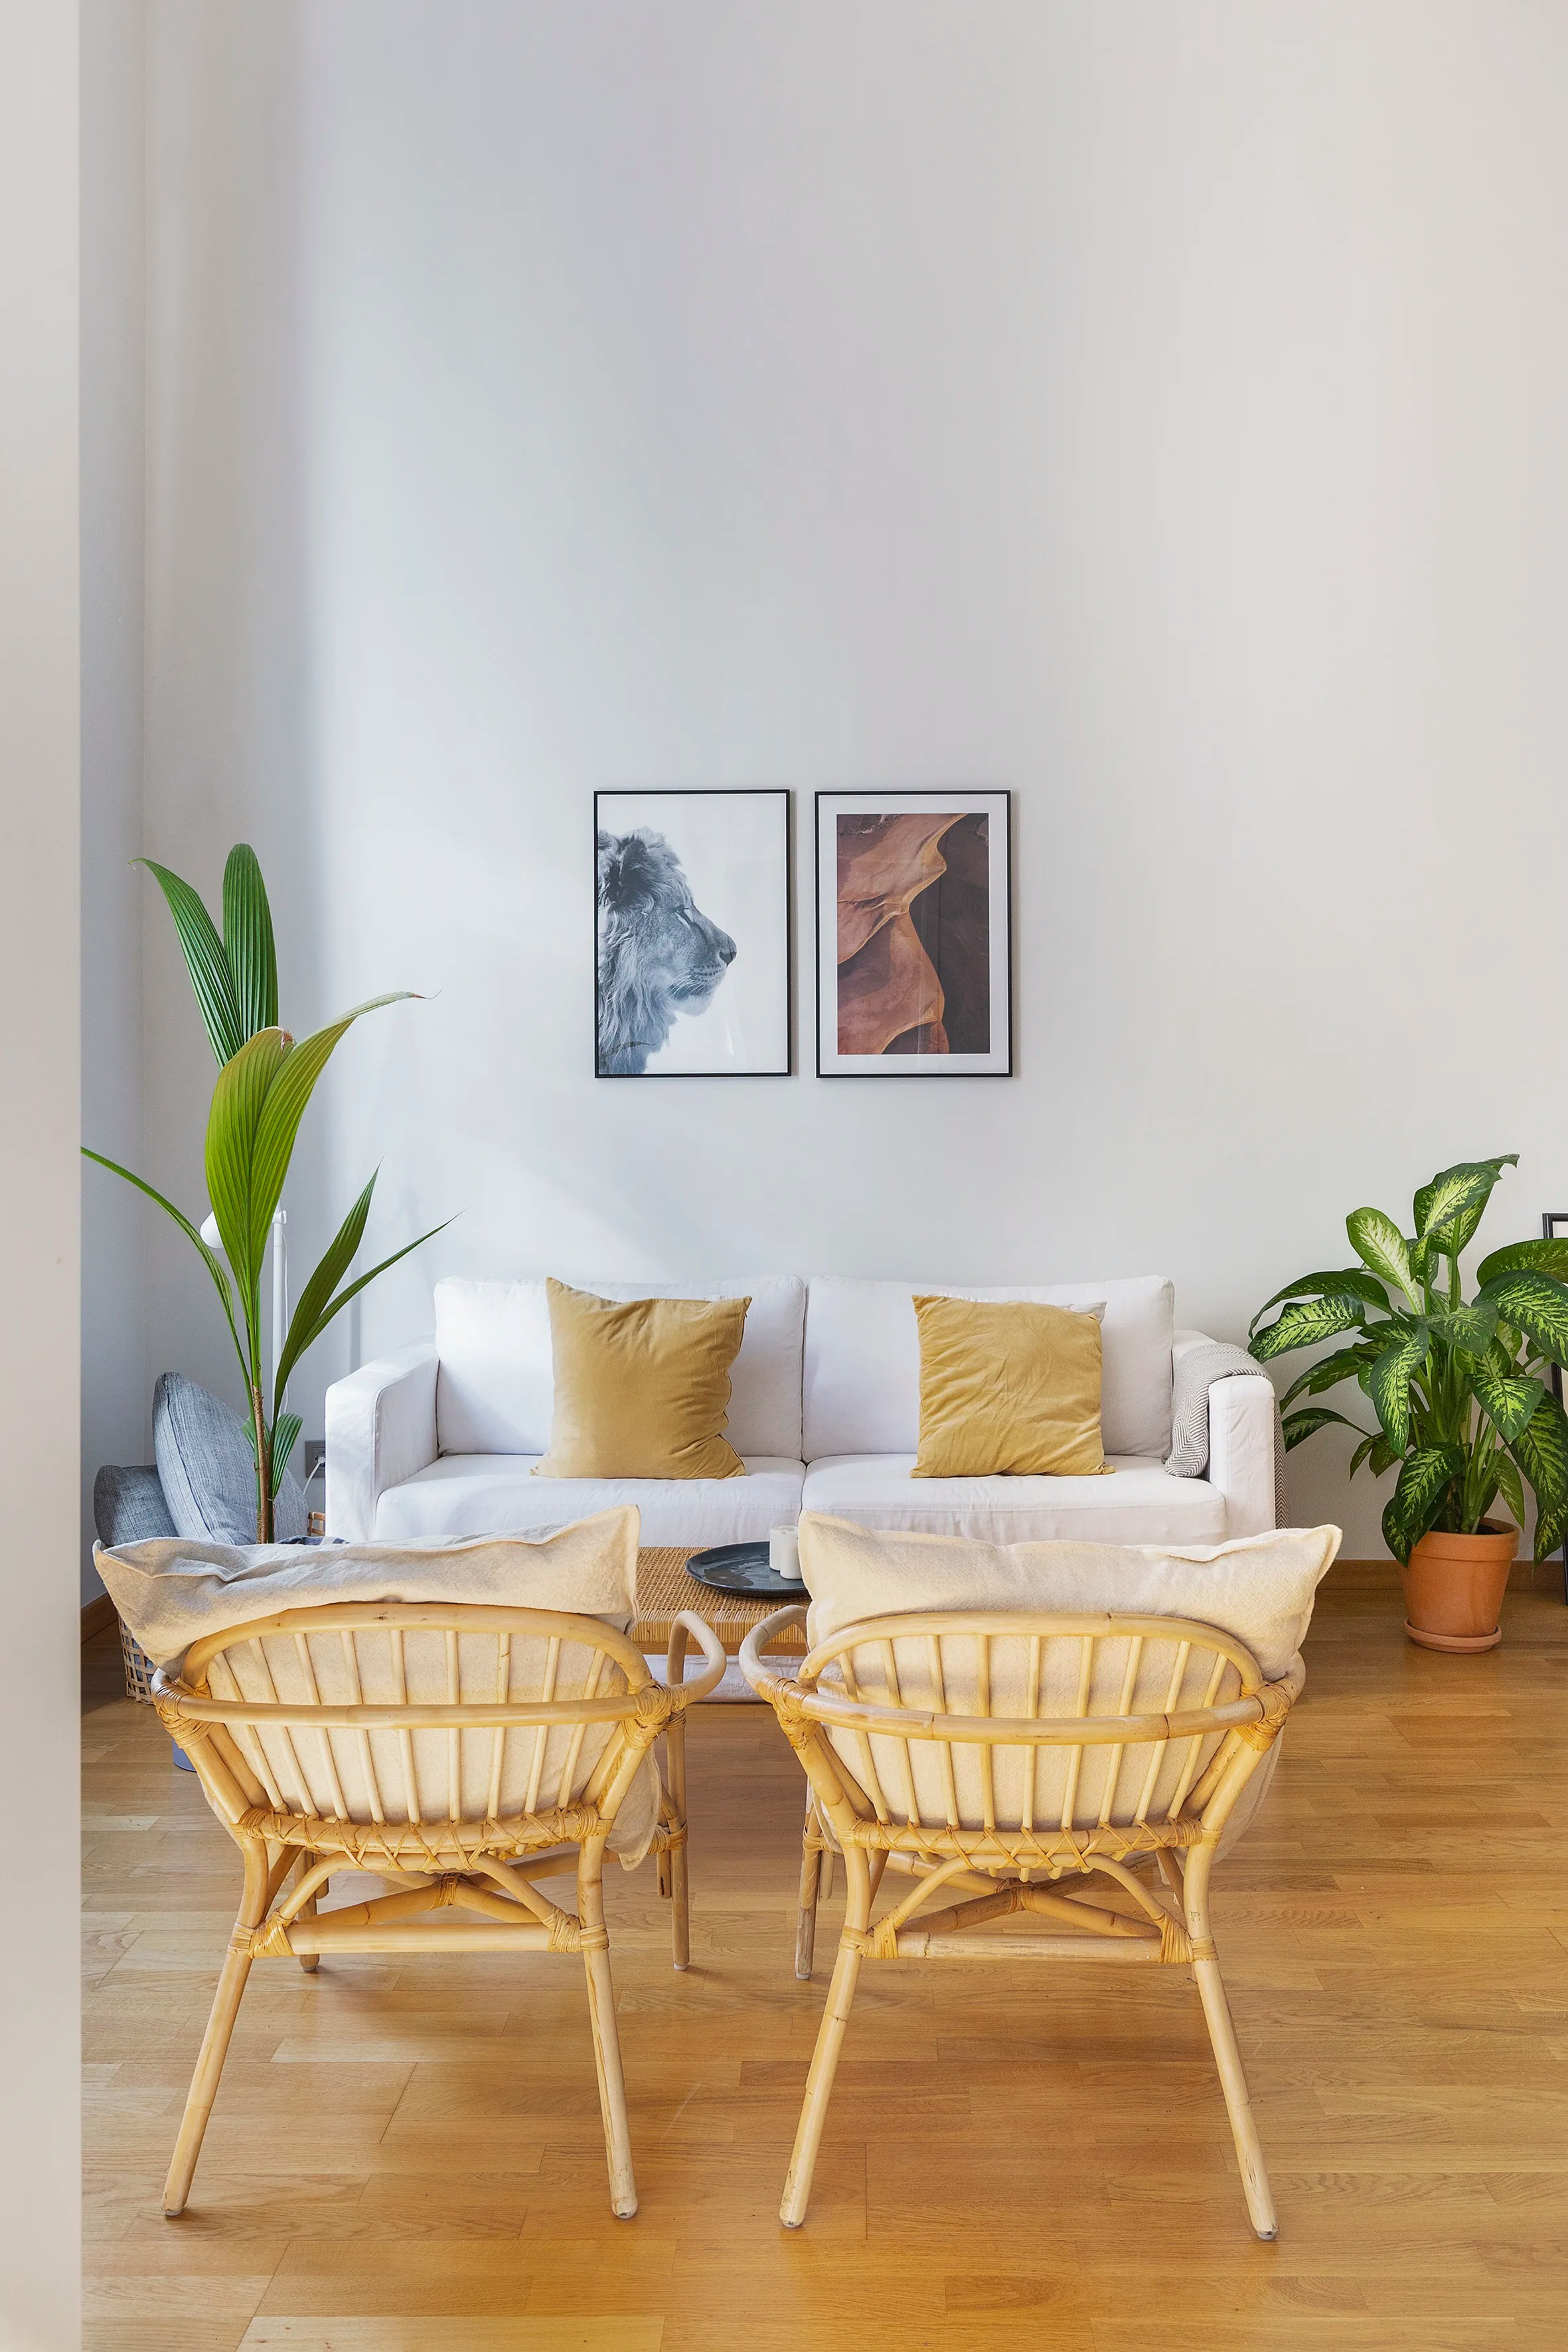 Ikea Filled Barcelona House Tour Photos Apartment Therapy